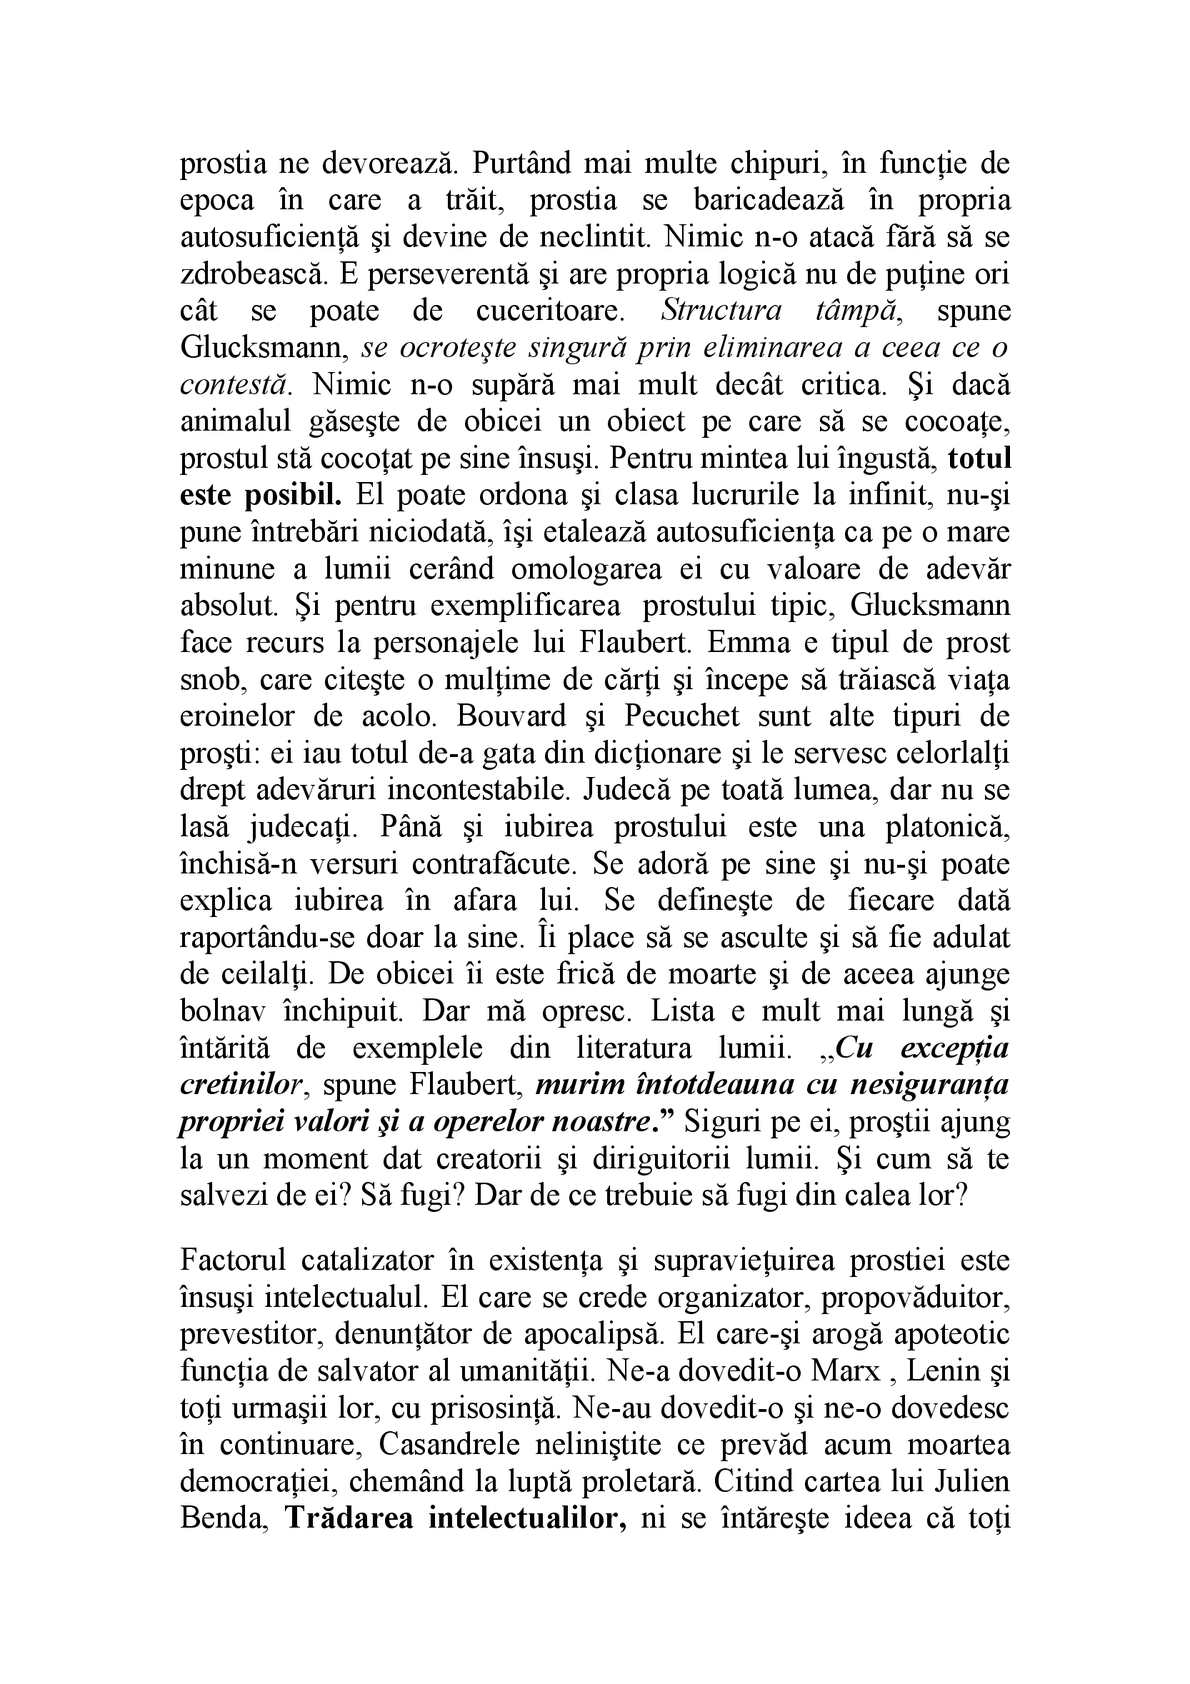 Page 242